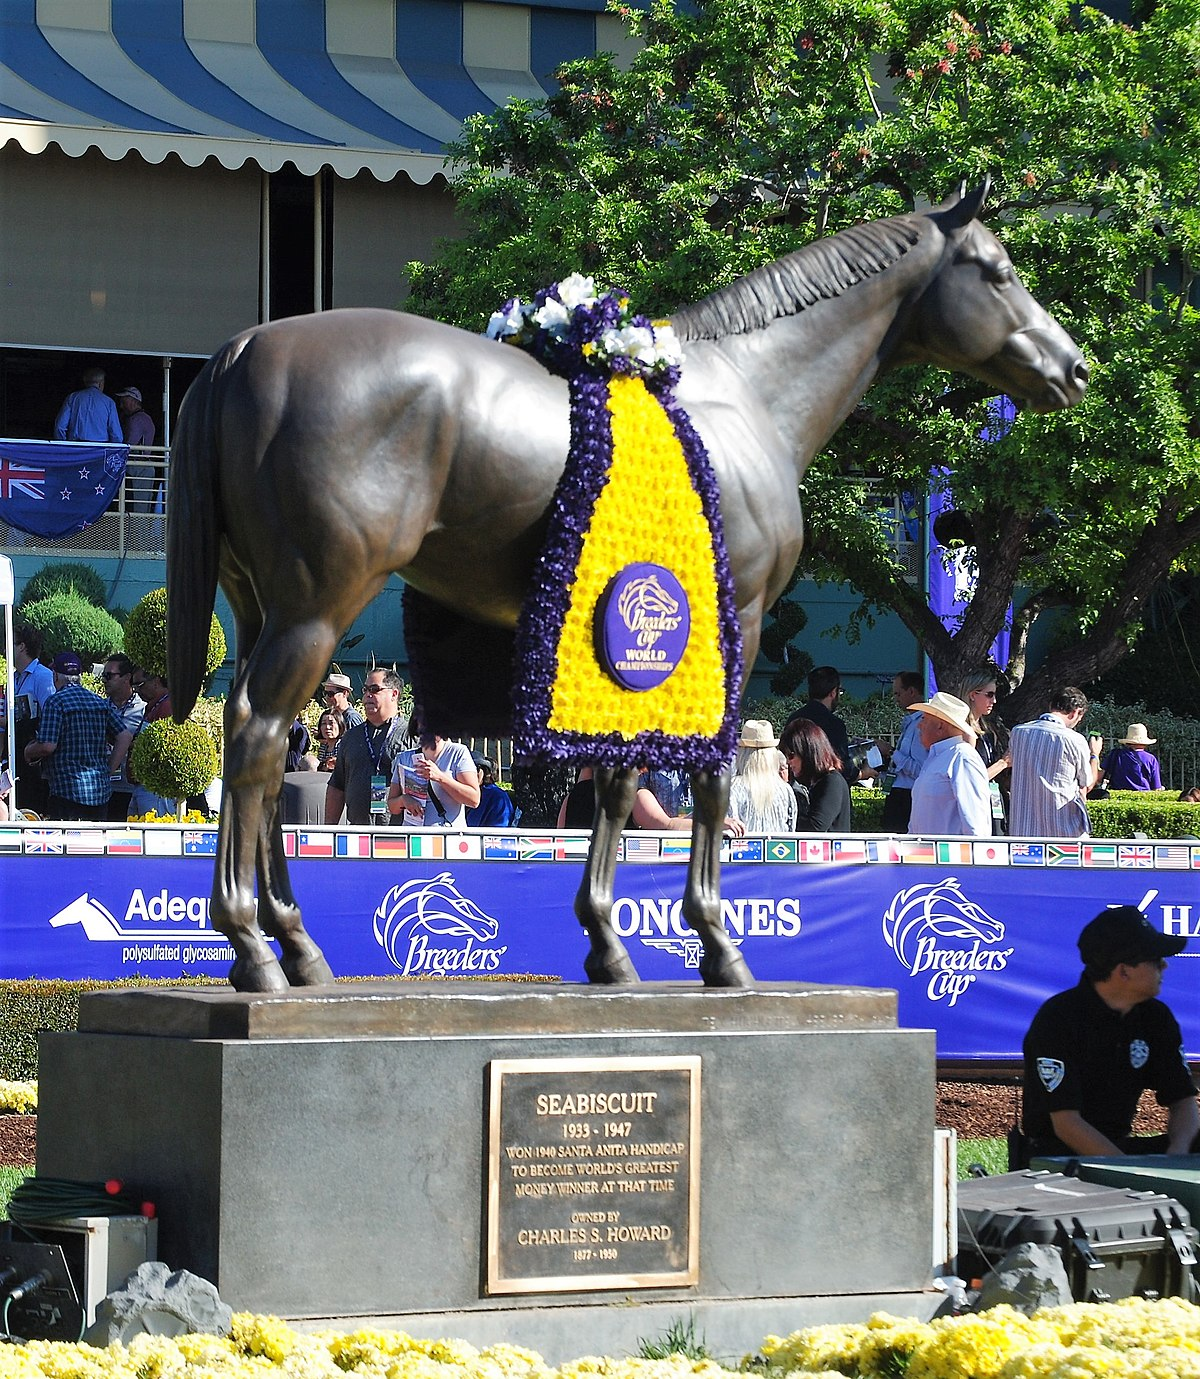 2016 Breeders Cup Wikipedia